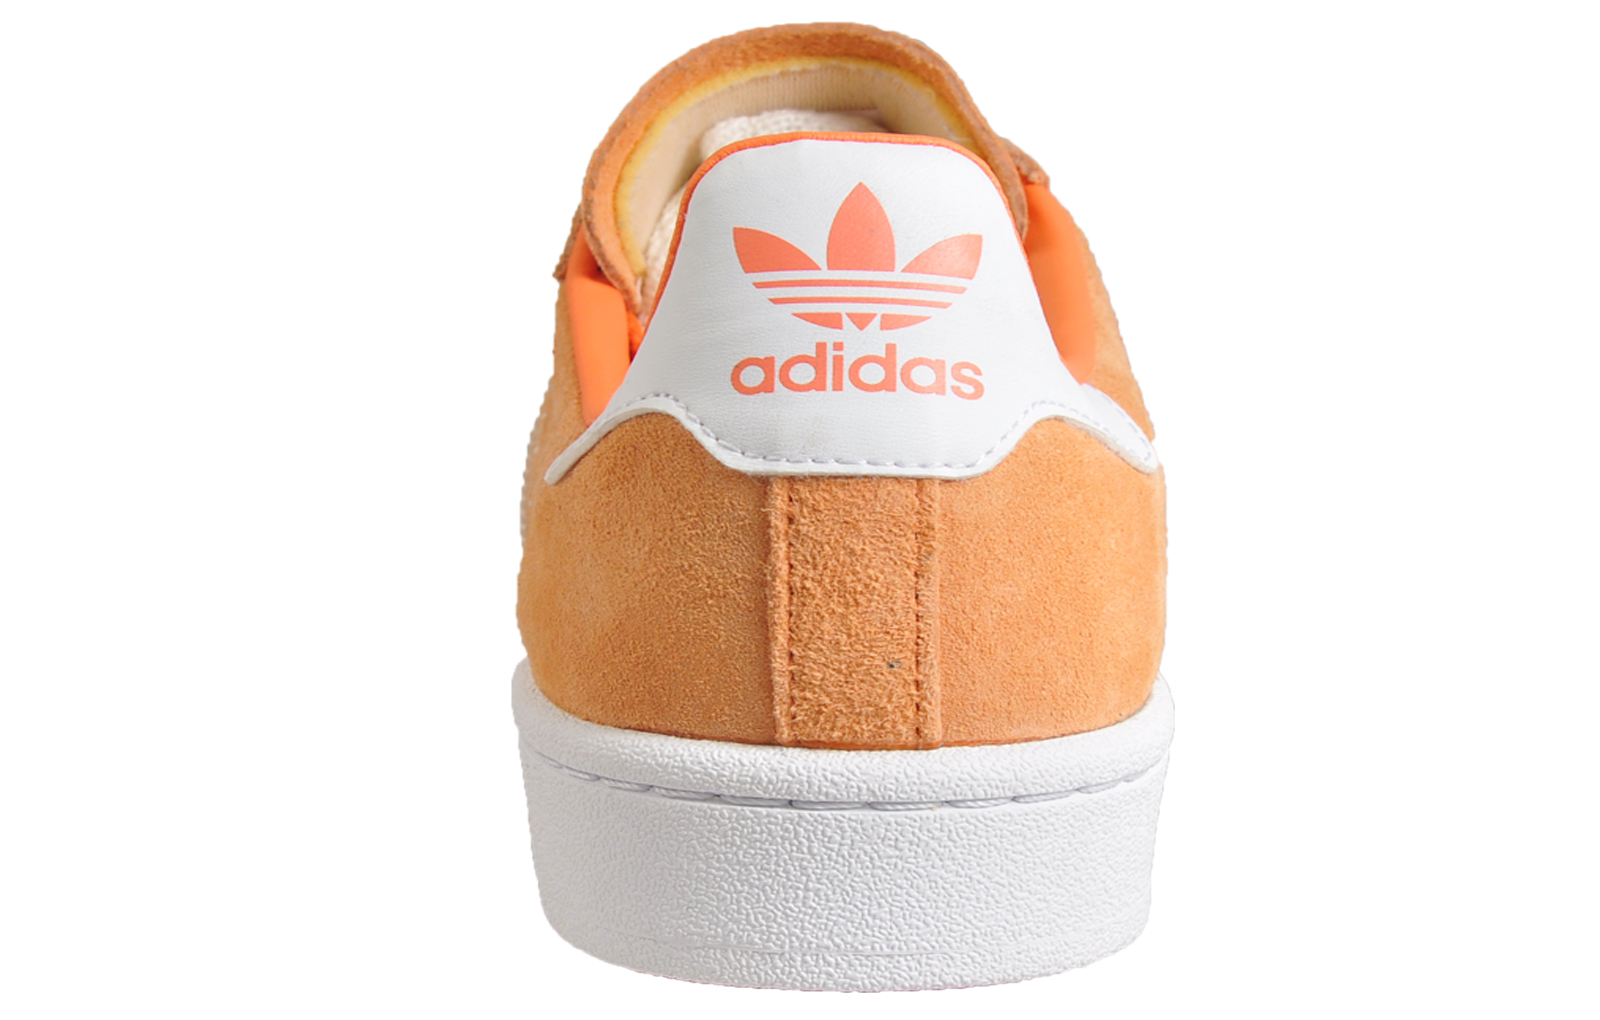 c48292a656b9 Adidas Originals Campus Mens Suede Leather Vintage Retro Sneakers Trainers.  Manufacturers code  BZ0083